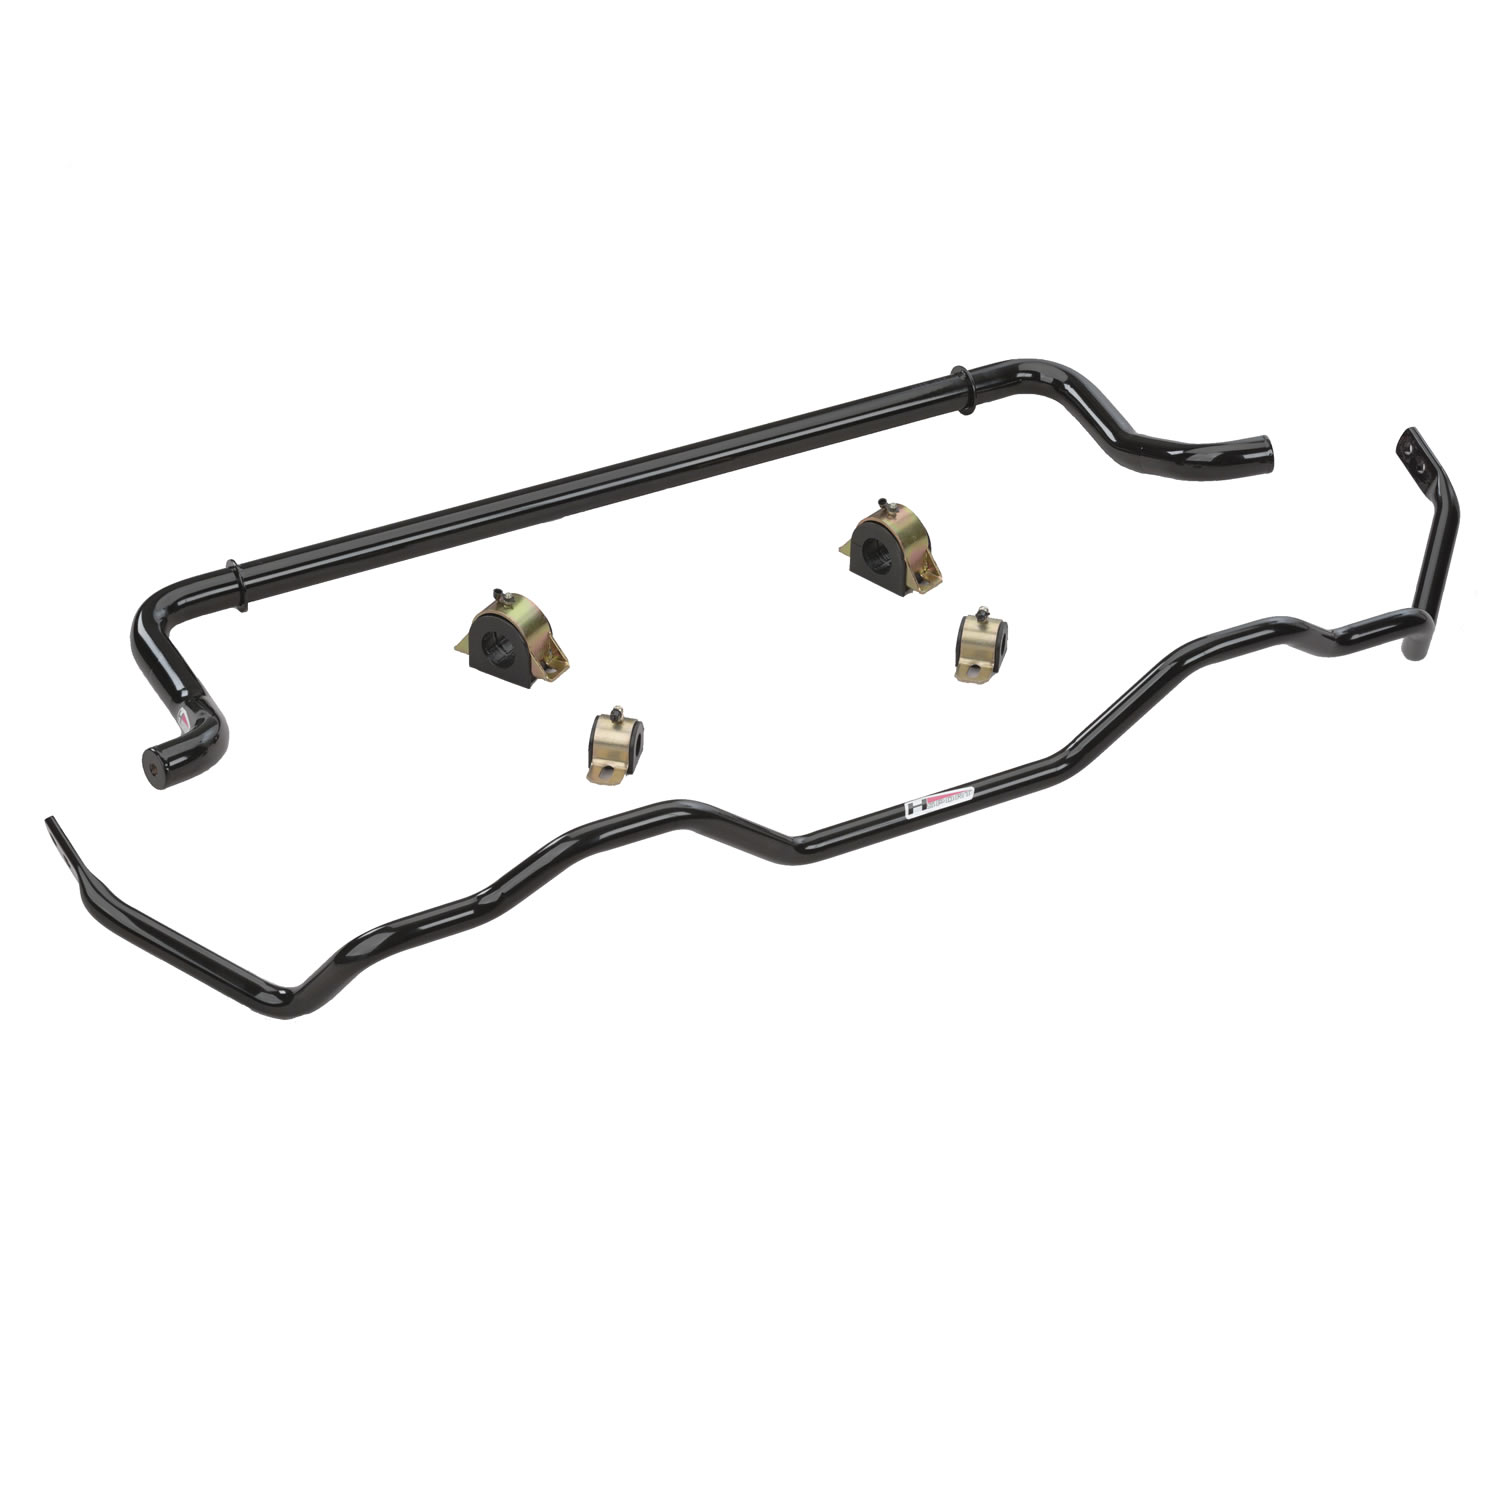 Audi Allroad Sport Sway Bar Set Black from Hotchkis Sport Suspension